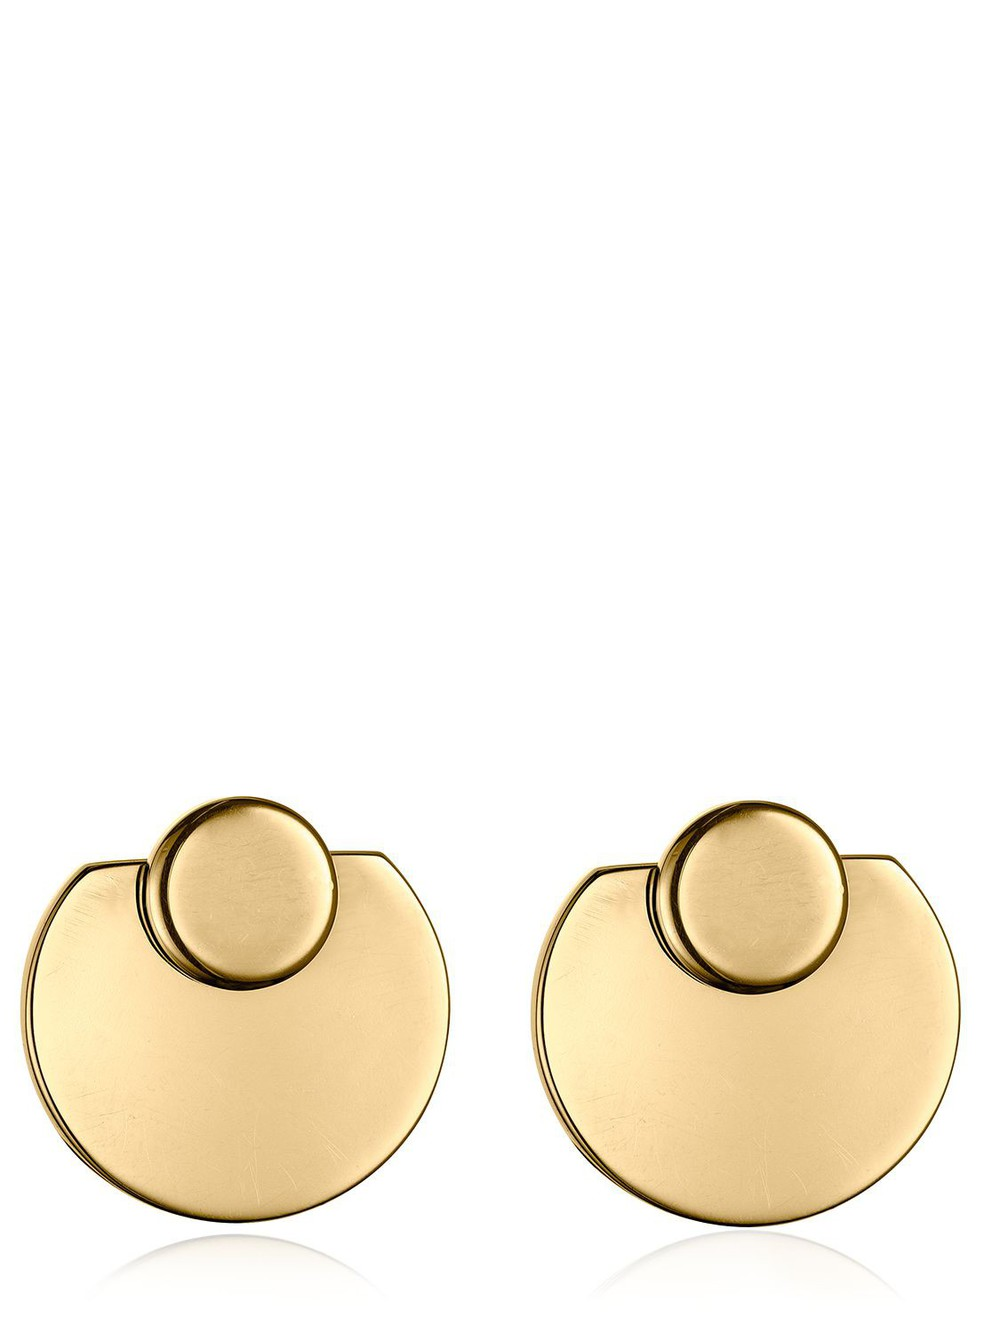 VITA FEDE Moneta Full Earrings in gold